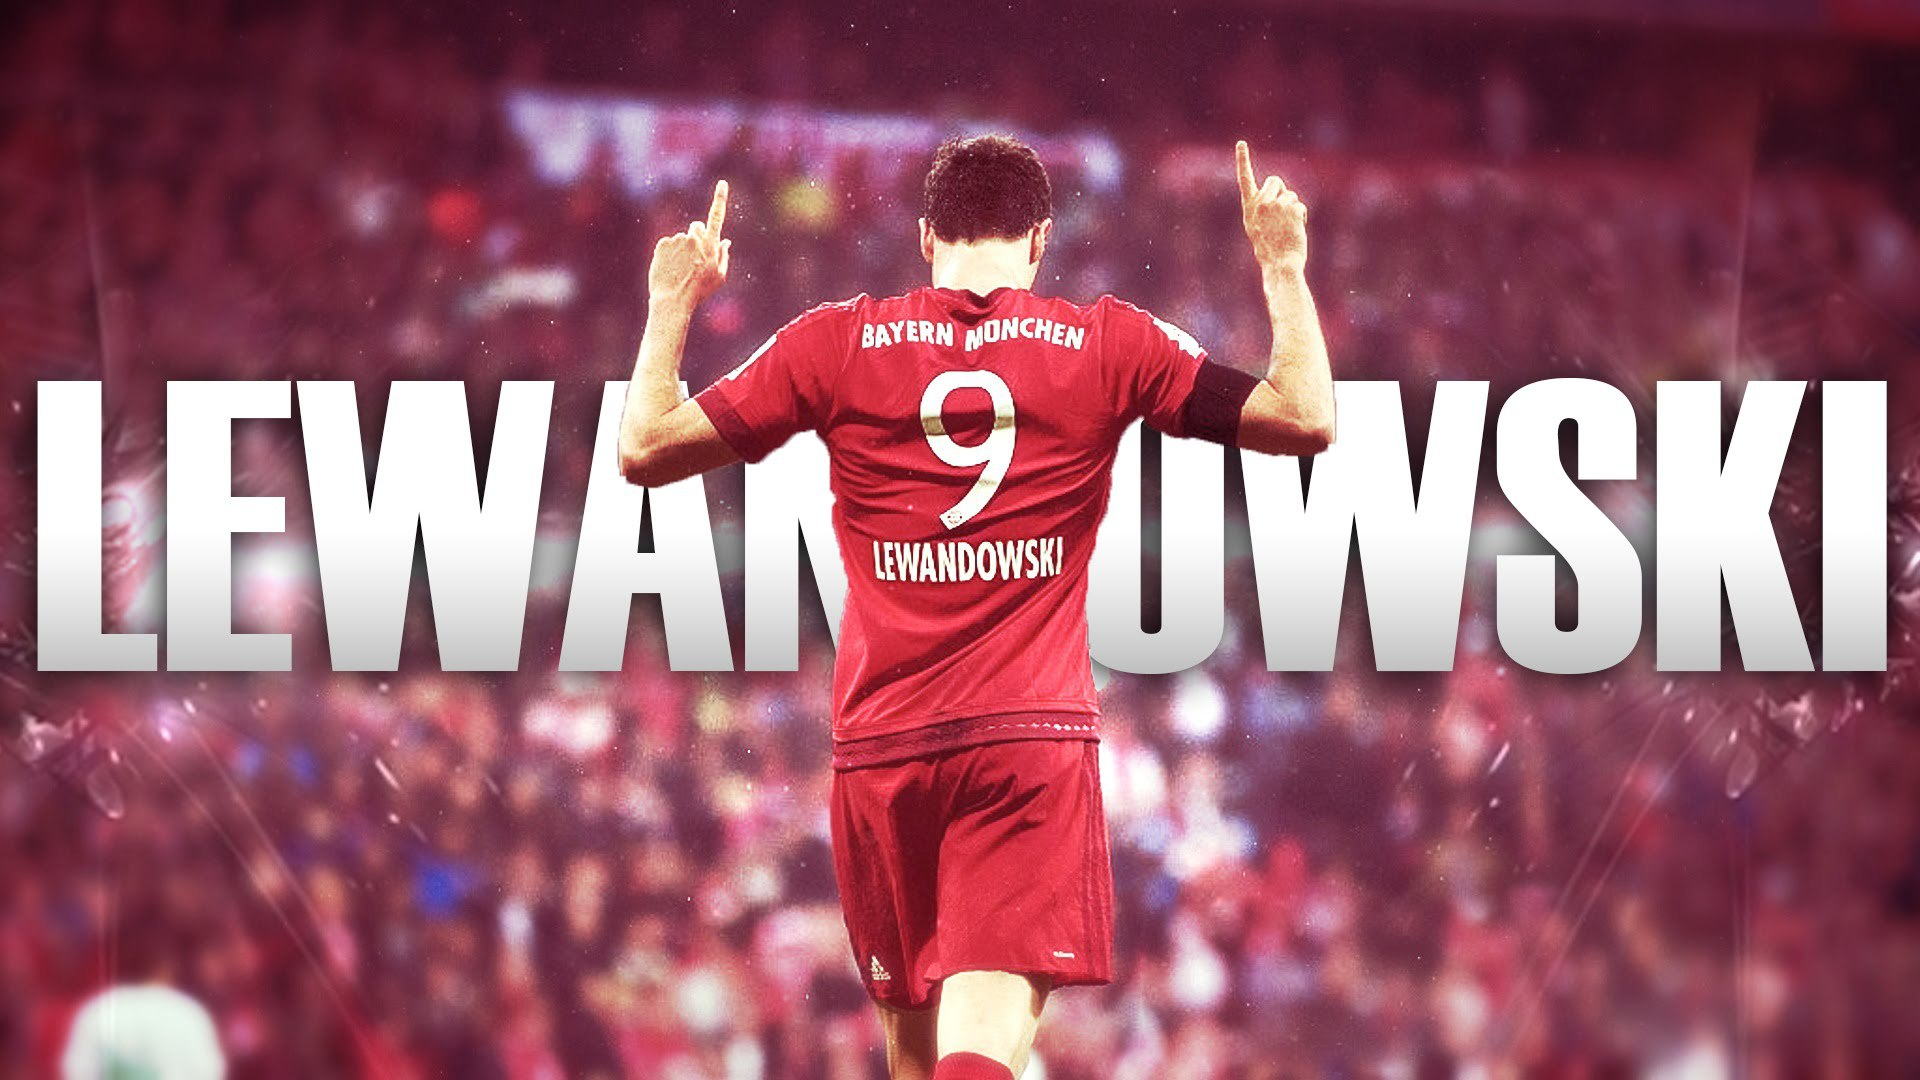 Robert Lewandowski Wallpapers Images Photos Pictures Backgrounds